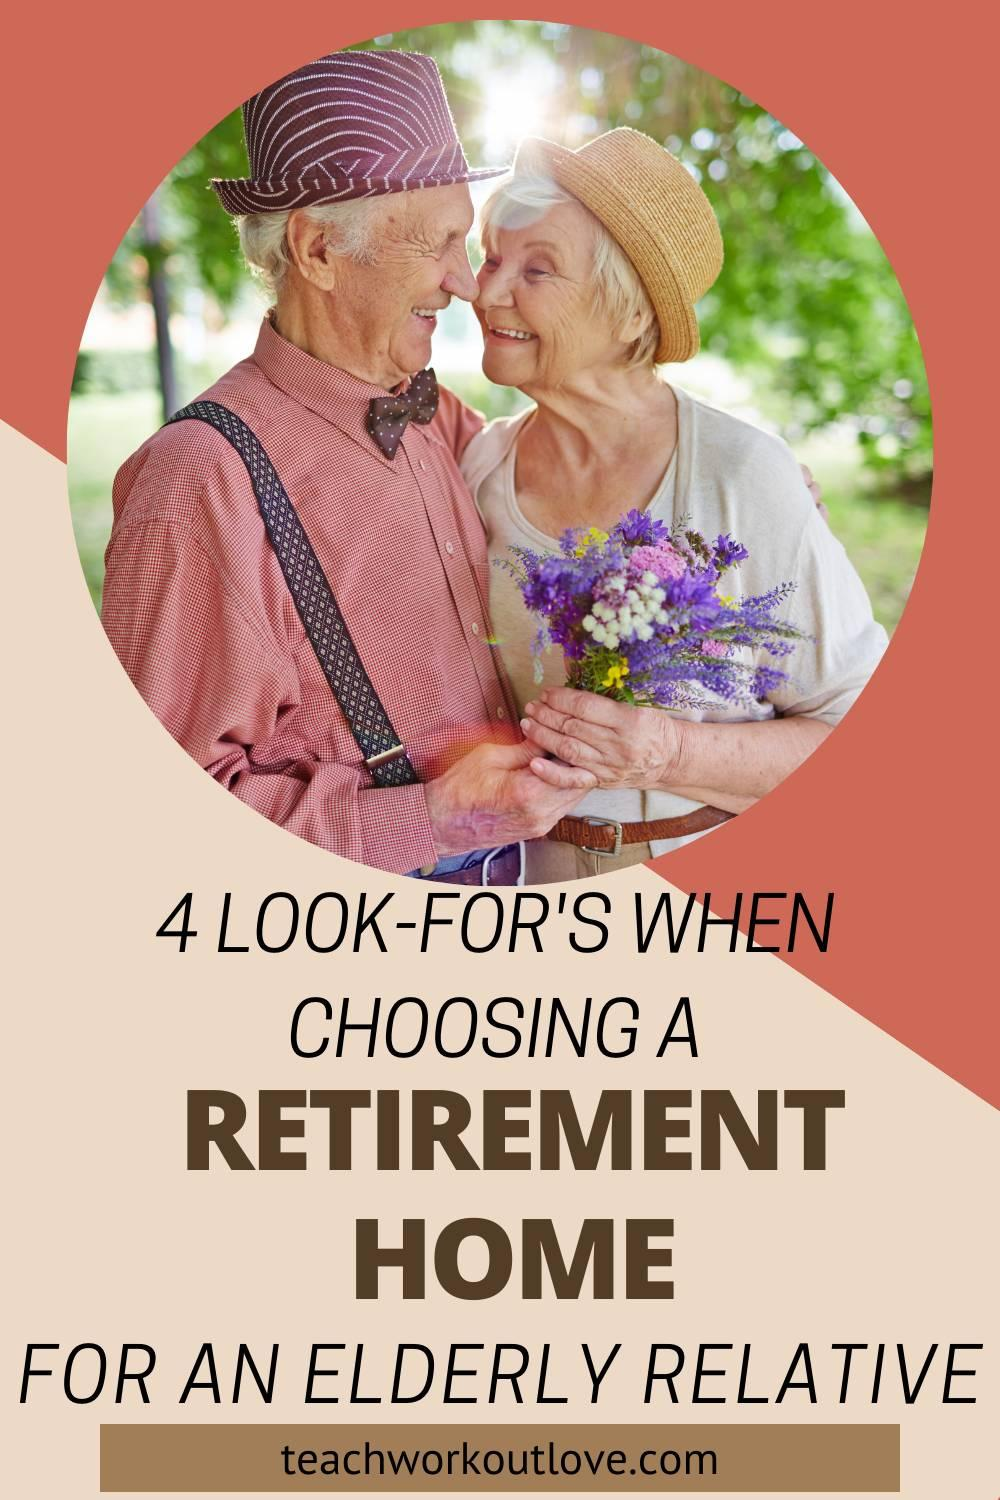 Have a family member or parent going into a retirement home? There are some better than others. Here's 4 important look-fors.